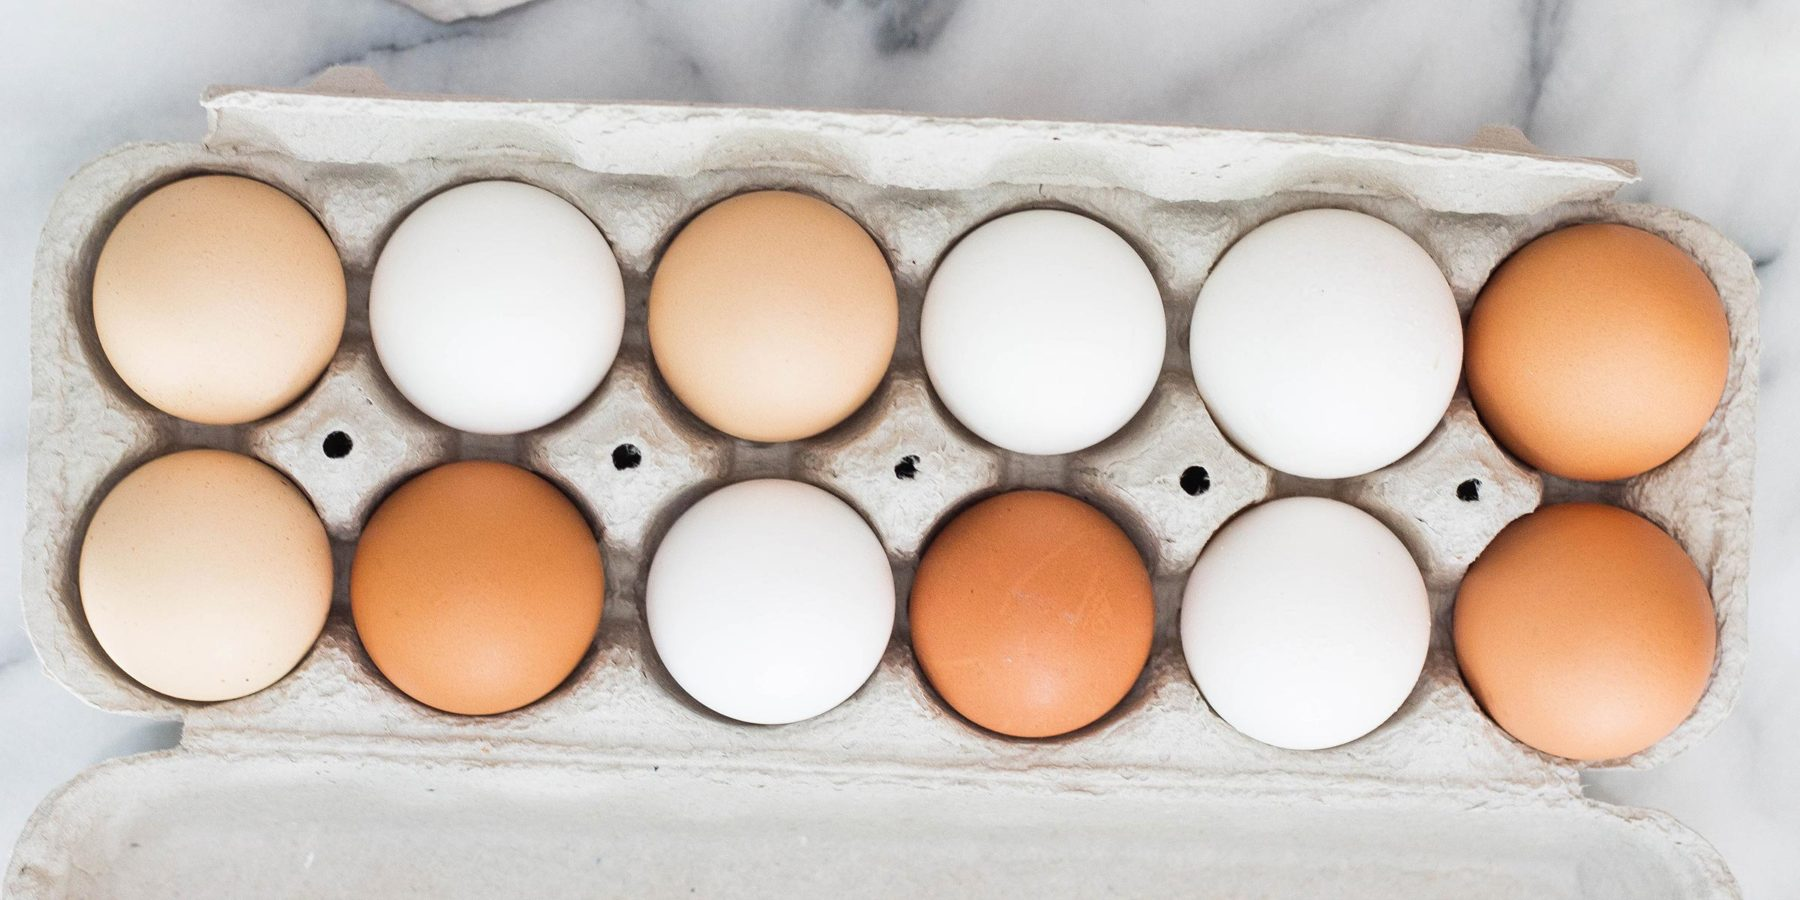 Multi Colored Eggs in their Carton